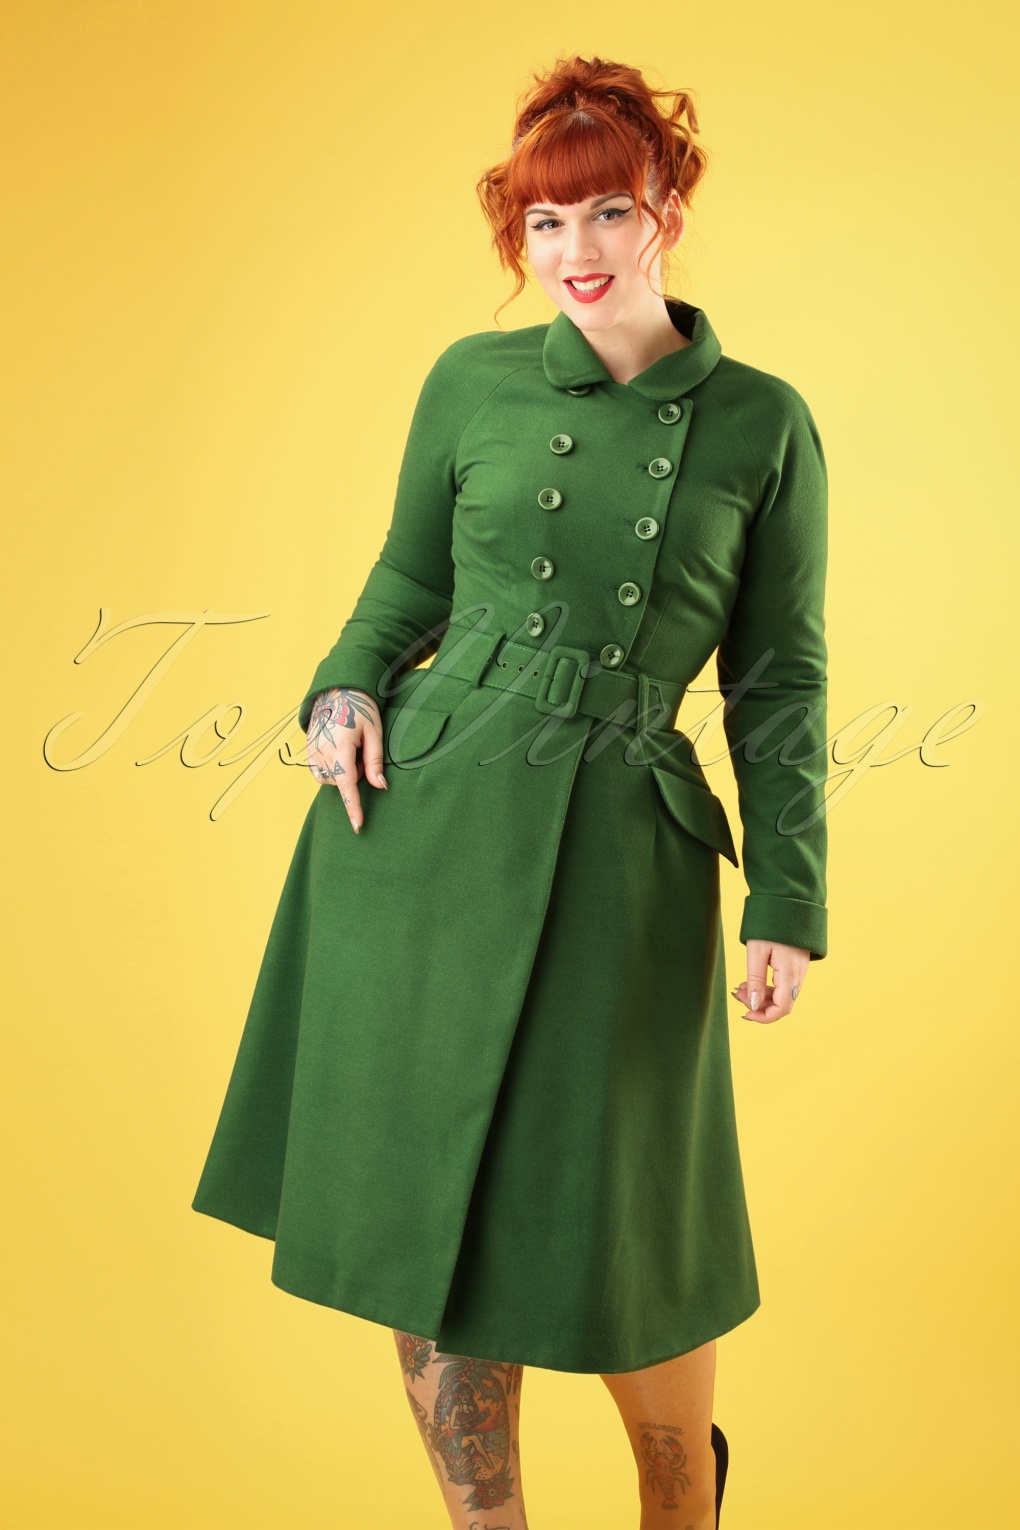 1950s Jackets, Coats, Bolero | Swing, Pin Up, Rockabilly 50s Addy Coat in Green £133.97 AT vintagedancer.com